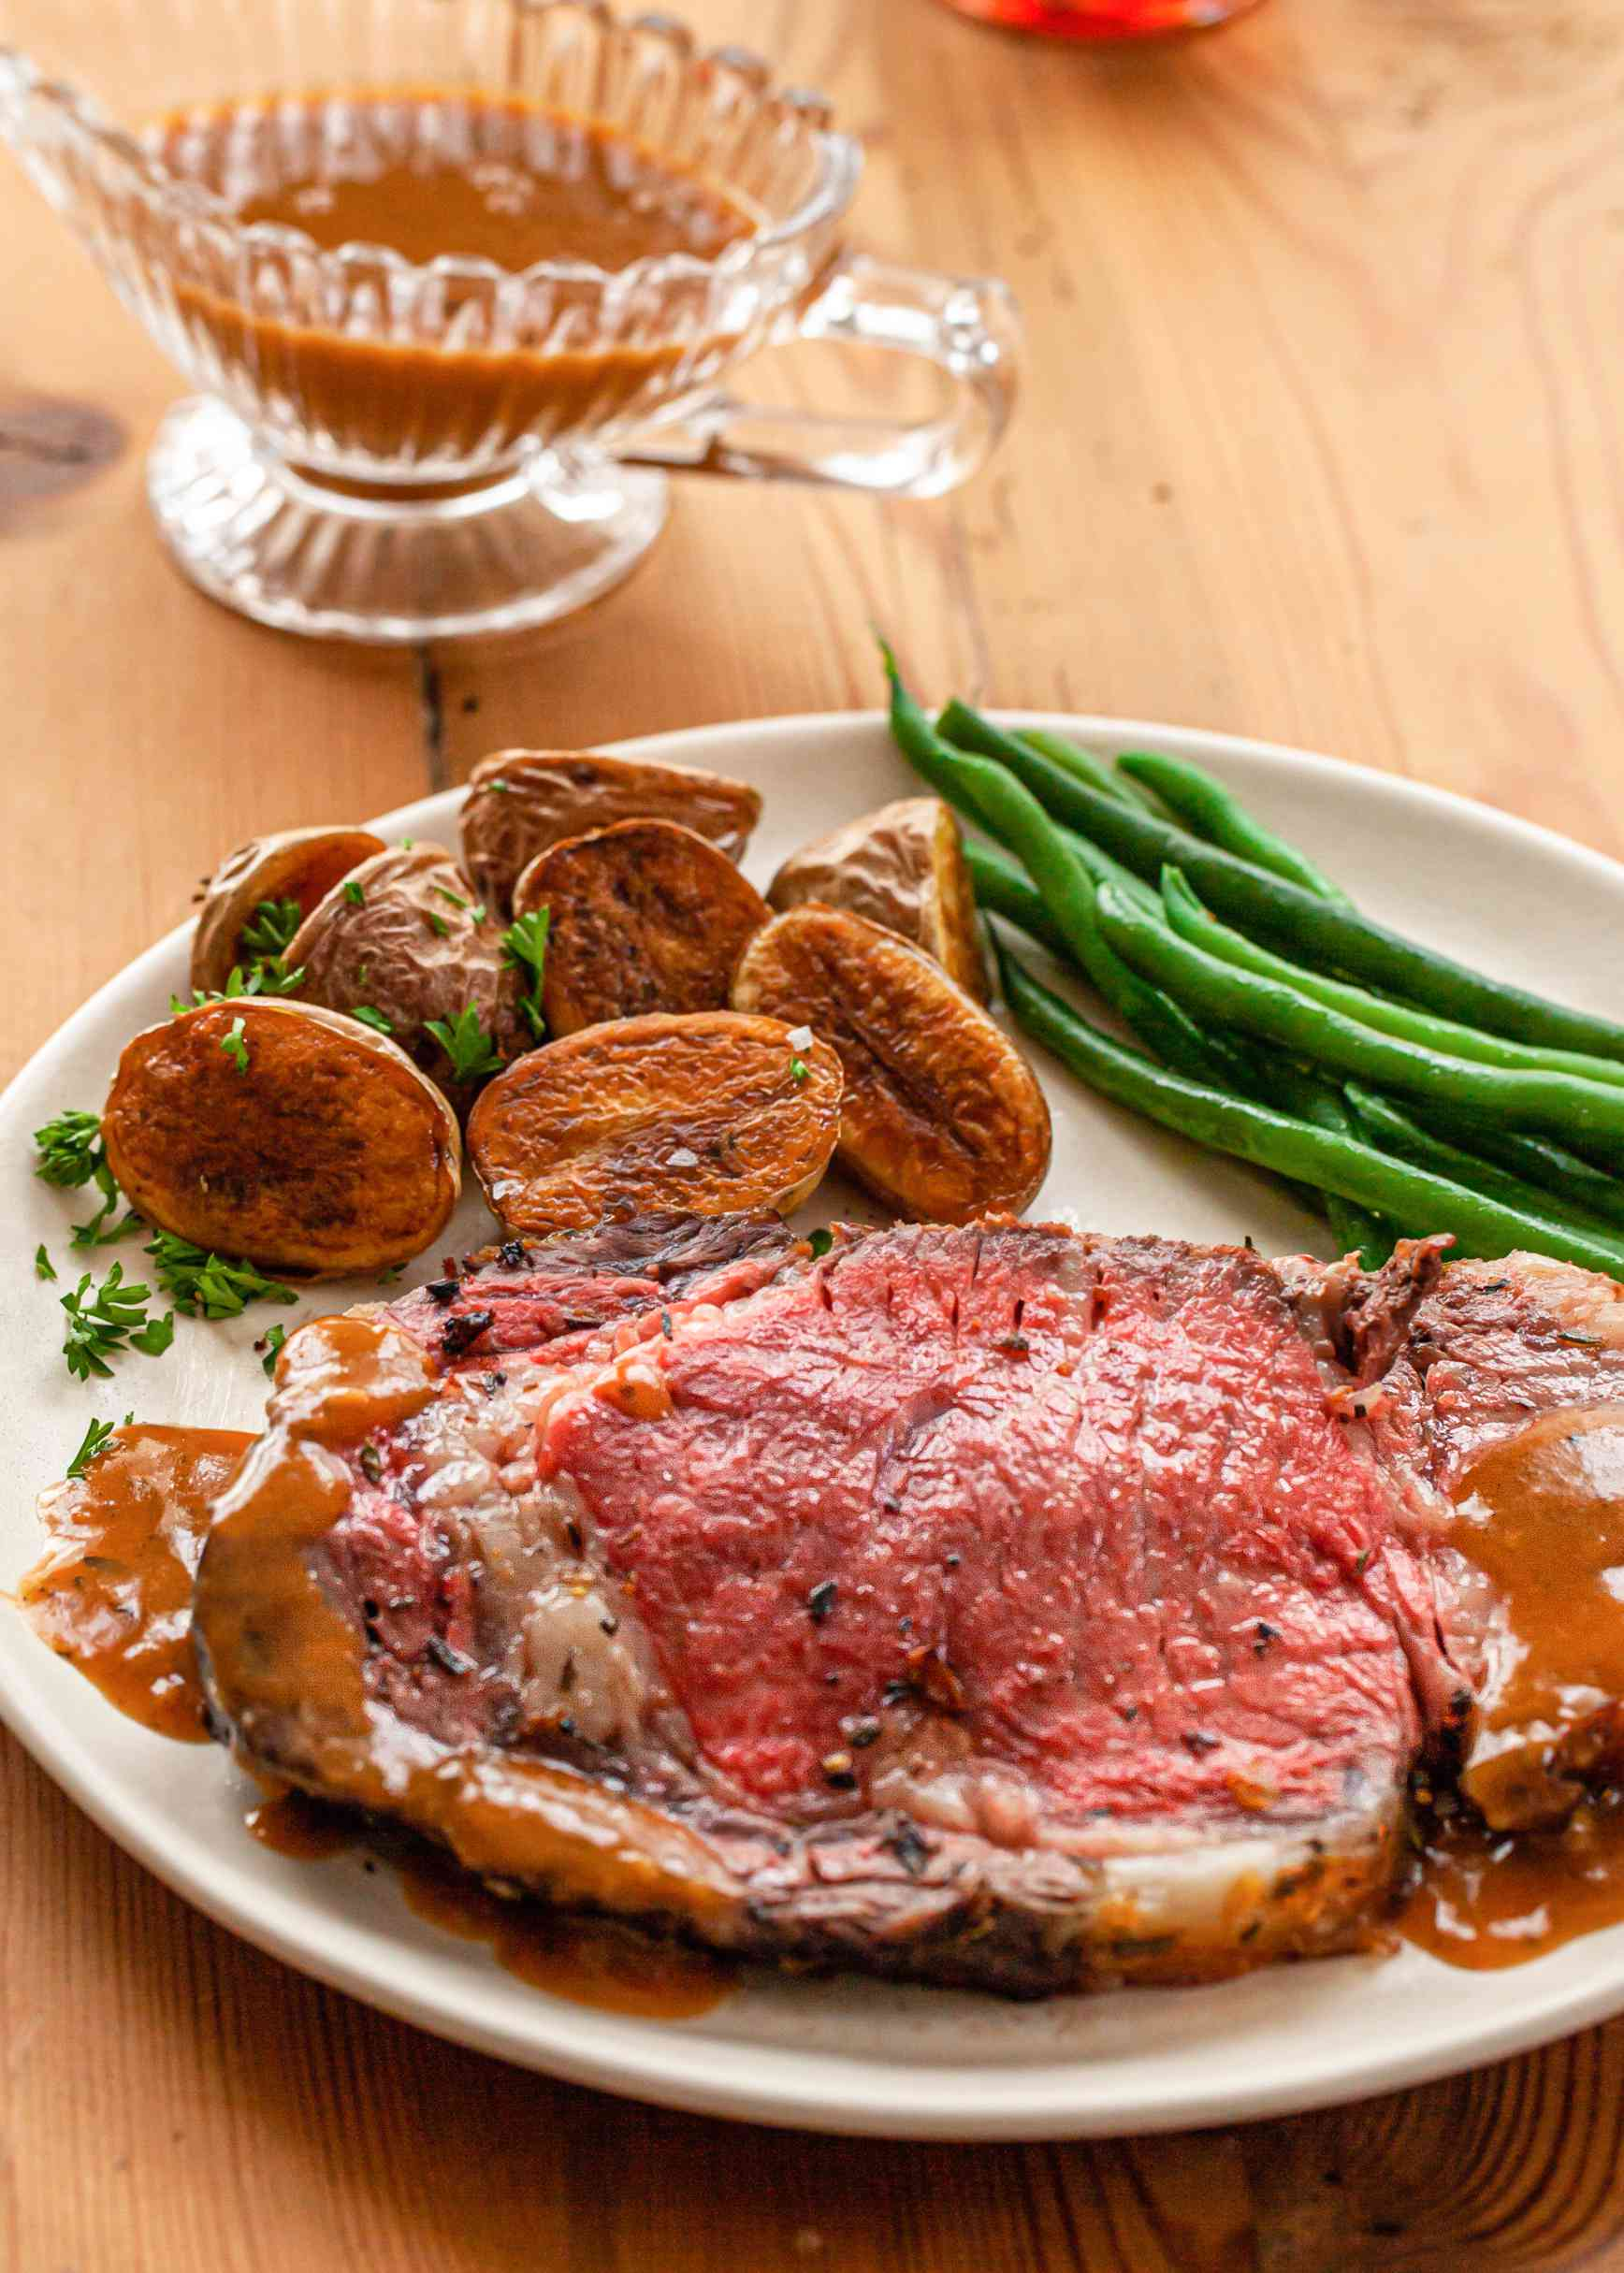 Prime Rib with Thyme, Rosemary, Shallot Herb Butter on a plate with green beans and potatoes.